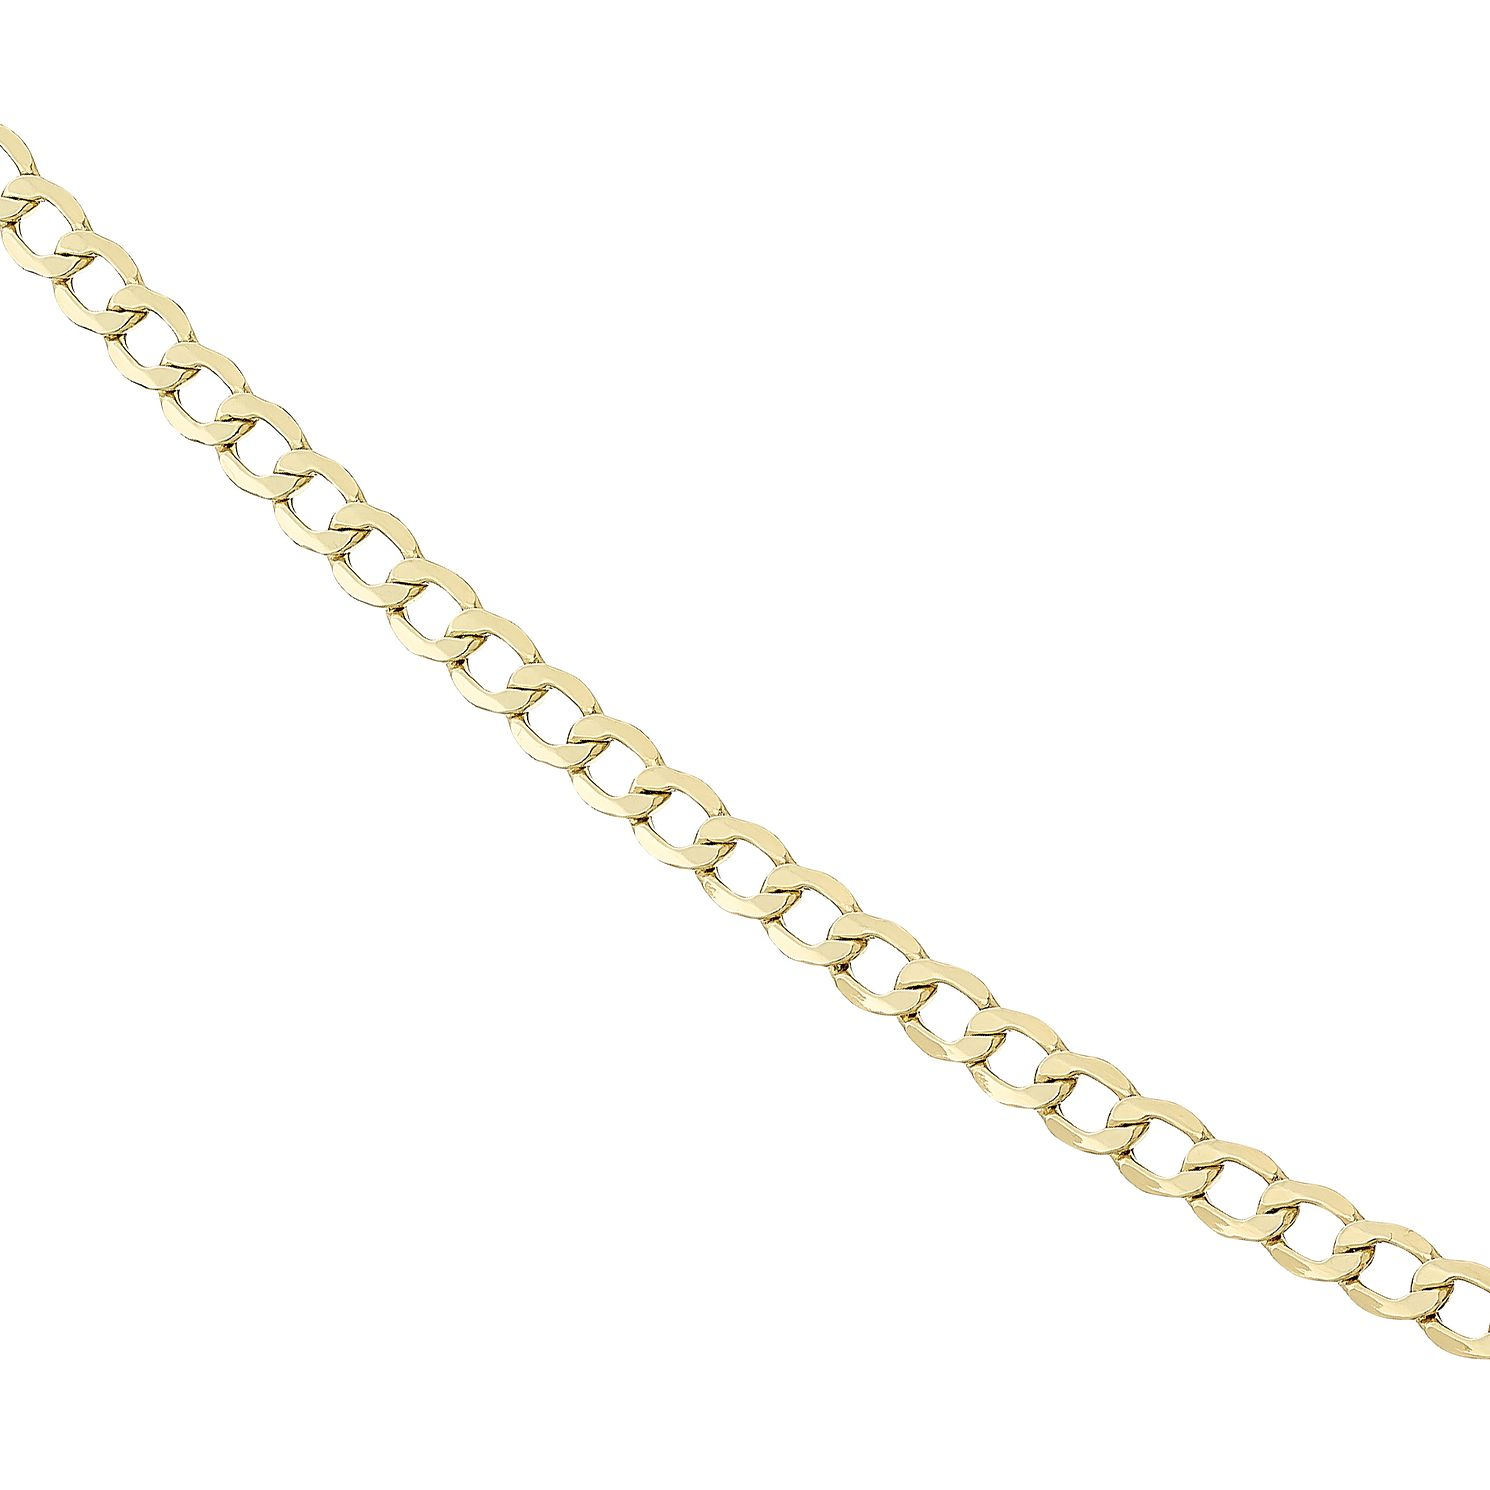 flat plated new stering chains product fashion silver snake accessories jewelry store necklace chain plain